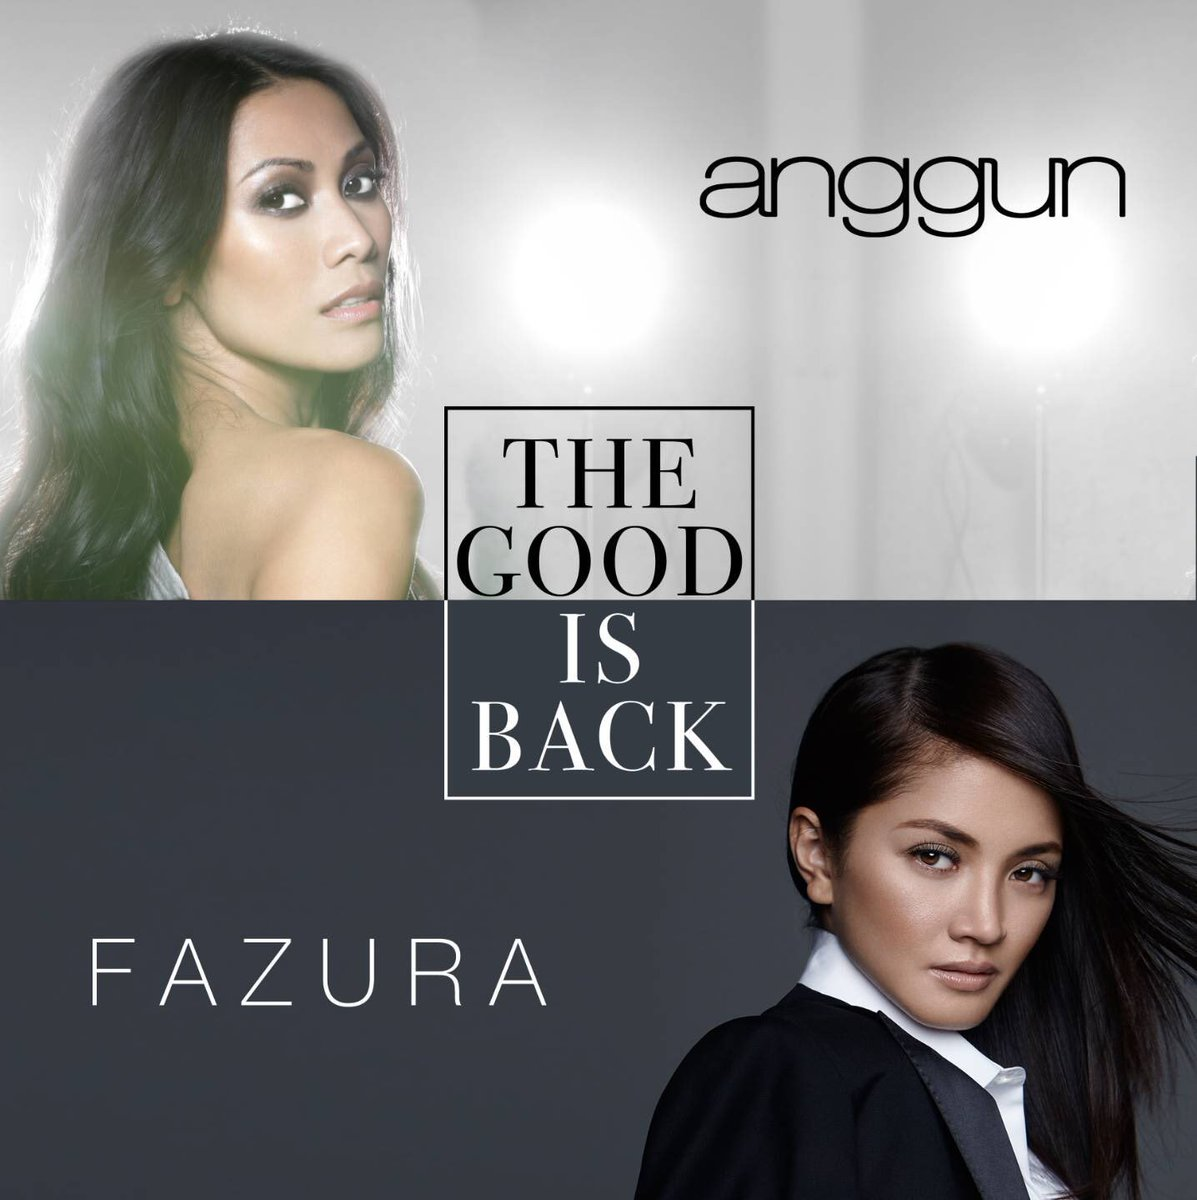 My new single #TheGoodIsBack in duet with the effervescent @missfazura 💝taken from my album #8 SPOTIFY https://t.co/zKzx0402zQ APPLE  https://t.co/QNlSomCtY9 KKBOX https://t.co/FGKvbVqVx0